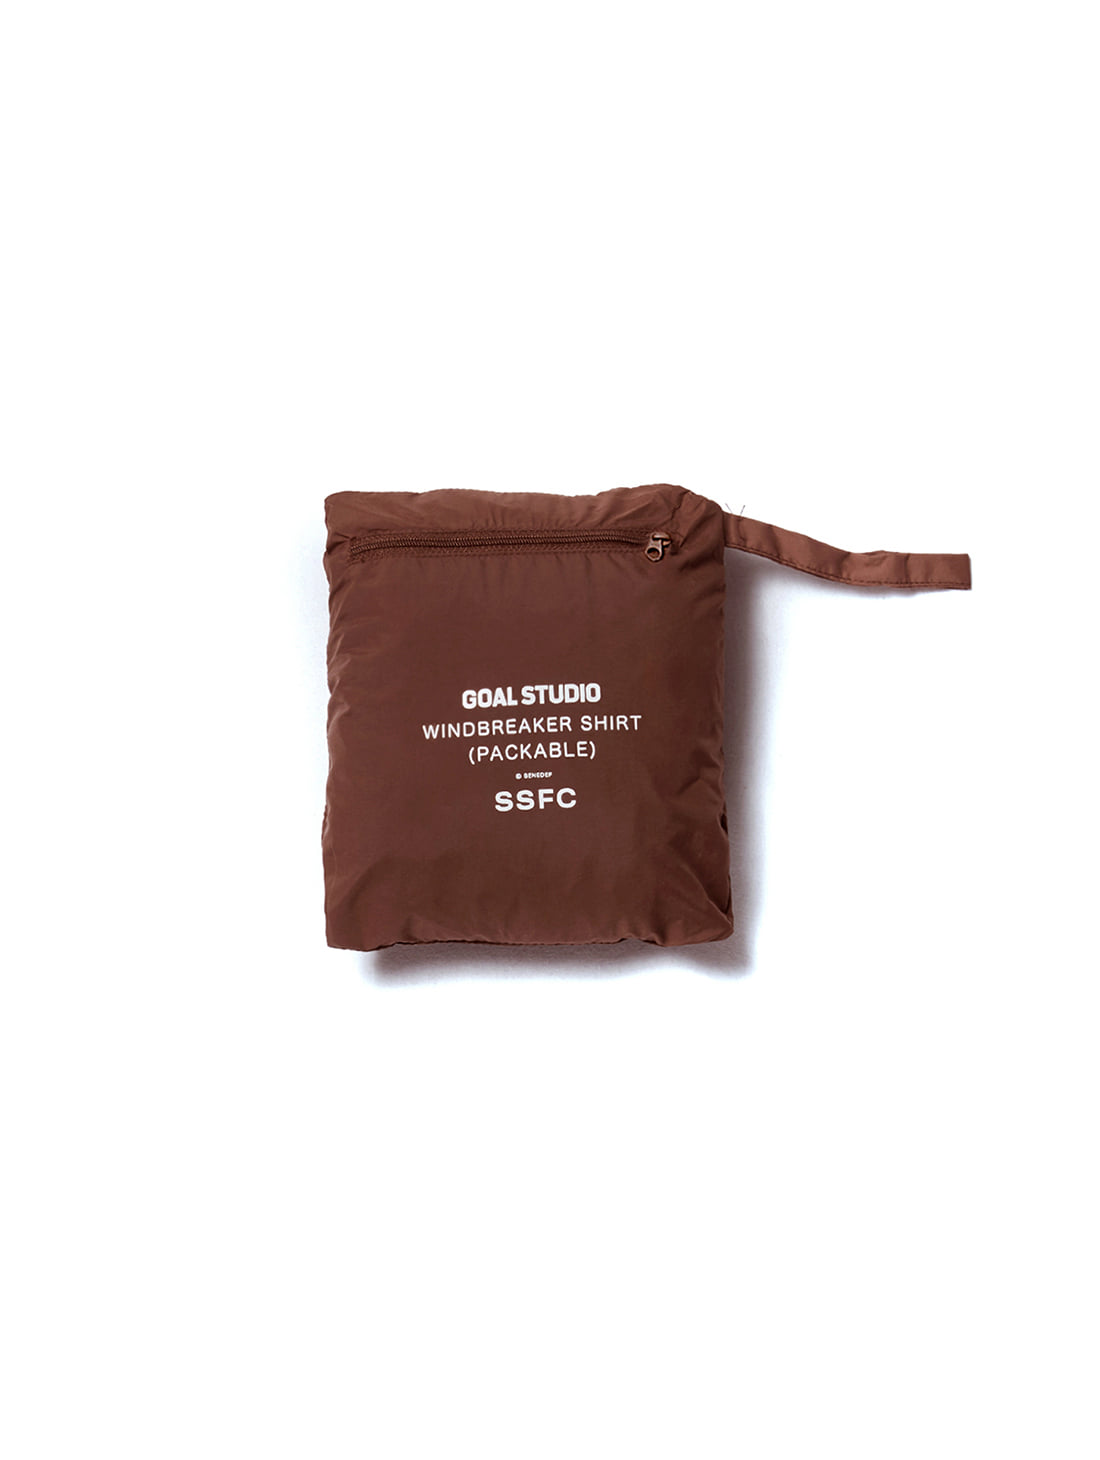 GOALSTUDIO SSFC WINDBREAKER SHIRT - BROWN